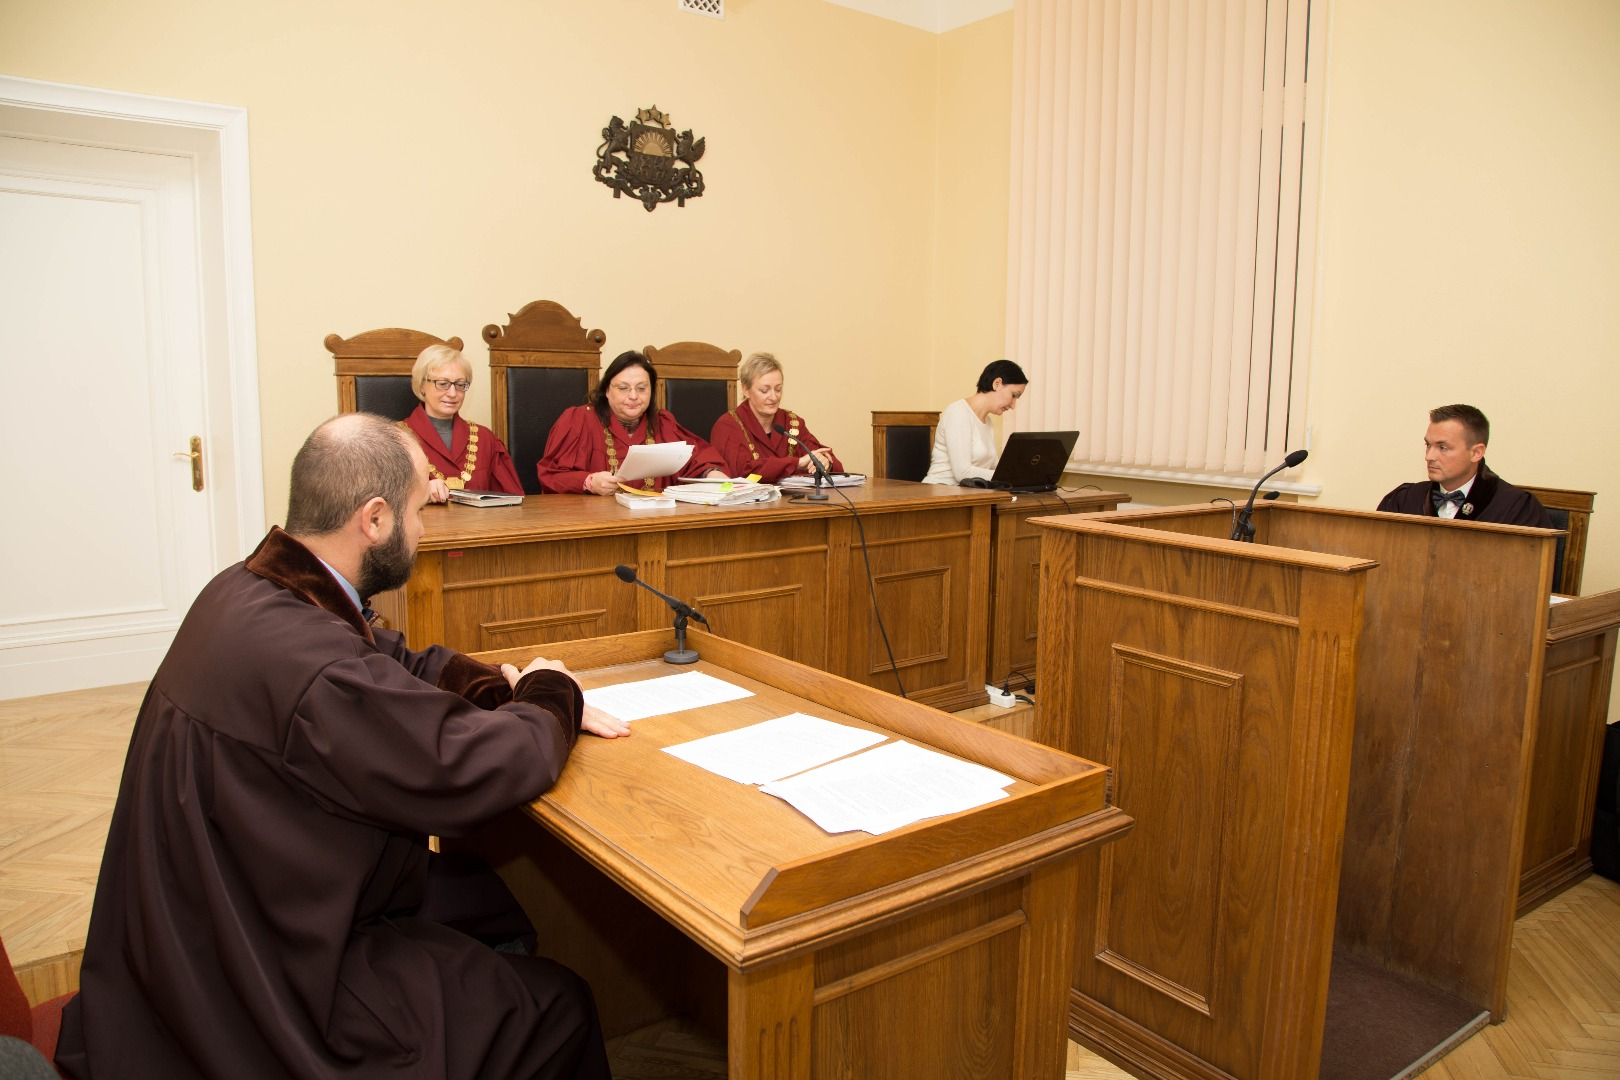 30.12.2016. In parallel with the reform of Latvian judicial system of January 1 the structure of the Supreme Court has changed. The appellate instance – the Chamber of Civil Cases – has ceased its activity and henceforth the Supreme Court will only be the cassation instance and cases will be heard by three departments – the Department of Civil Cases, the Department of Criminal Cases and the Department of Administrative Cases. With the termination of work of Chamber of Civil Cases, the Secretariat of the Chamber of Civil Cases is liquidated. Subsequently, the Court now has one Chancery.